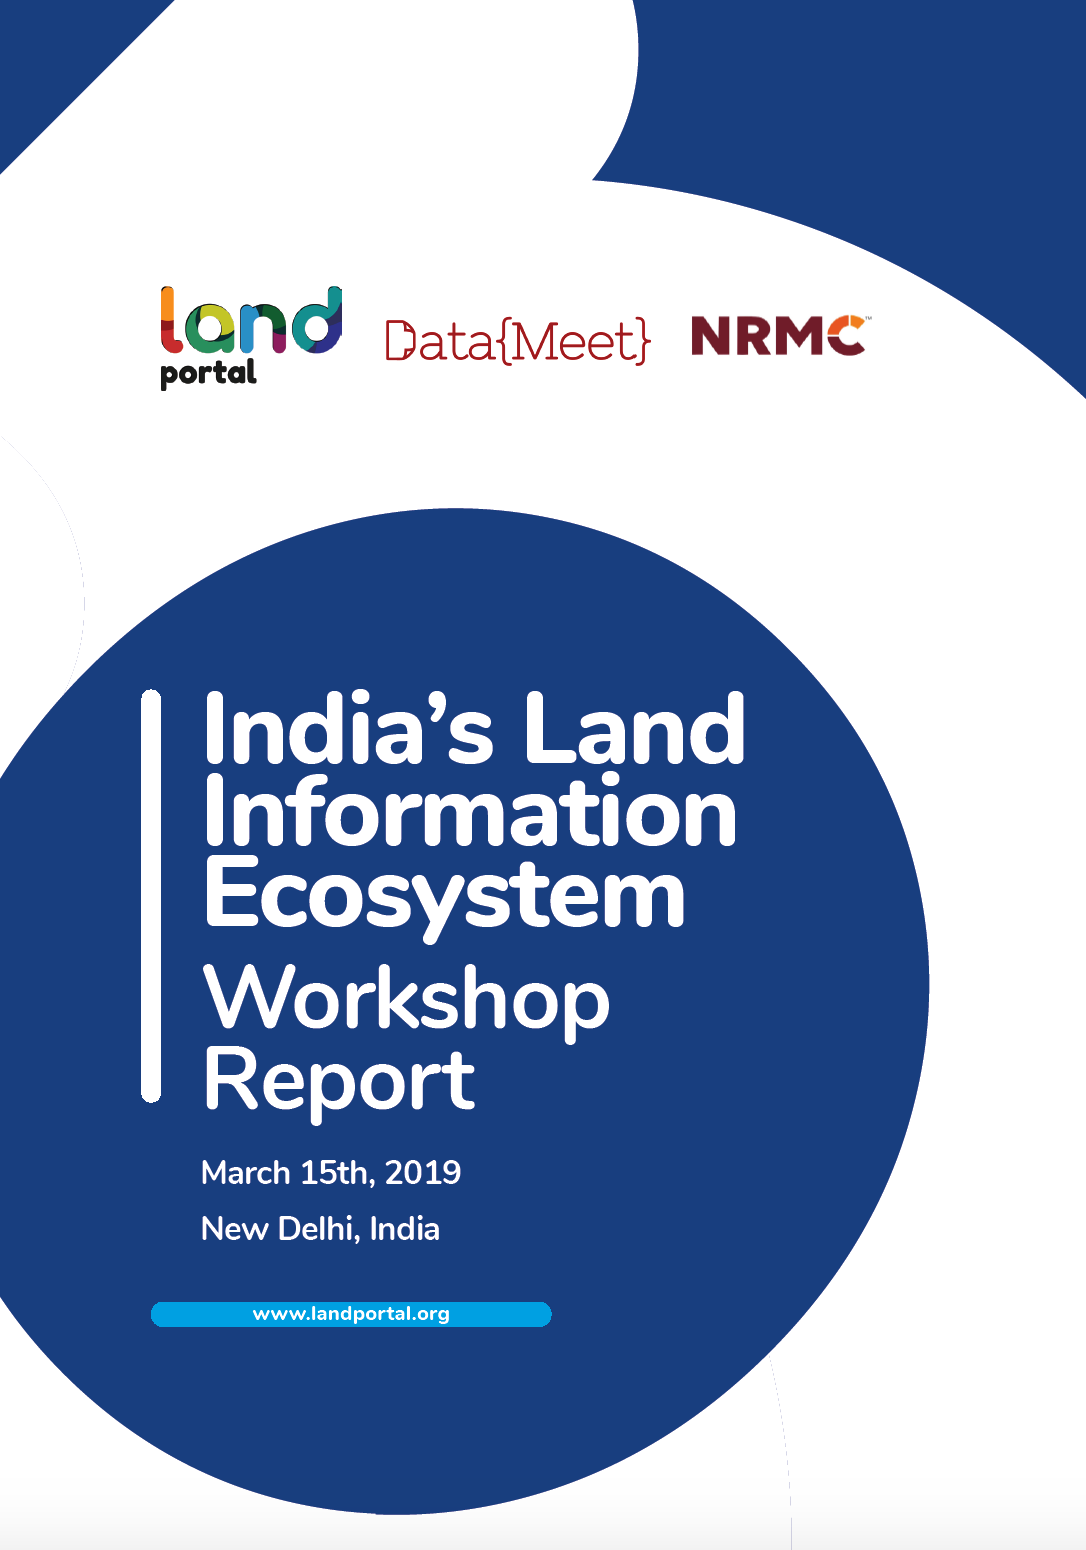 India's Land Information Ecosystem workshop report cover image